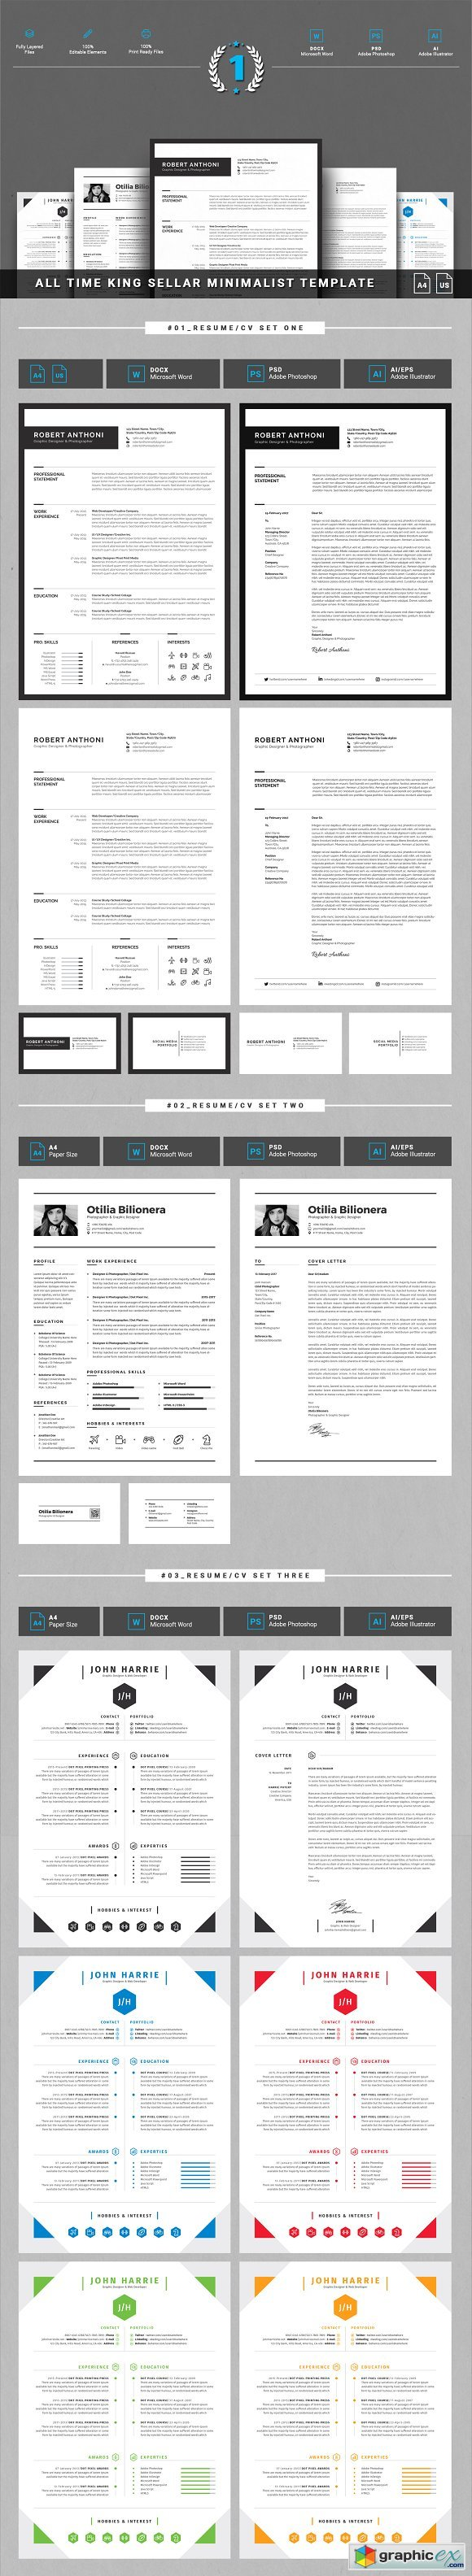 resume how to resume mega download wpazo resume for everyone